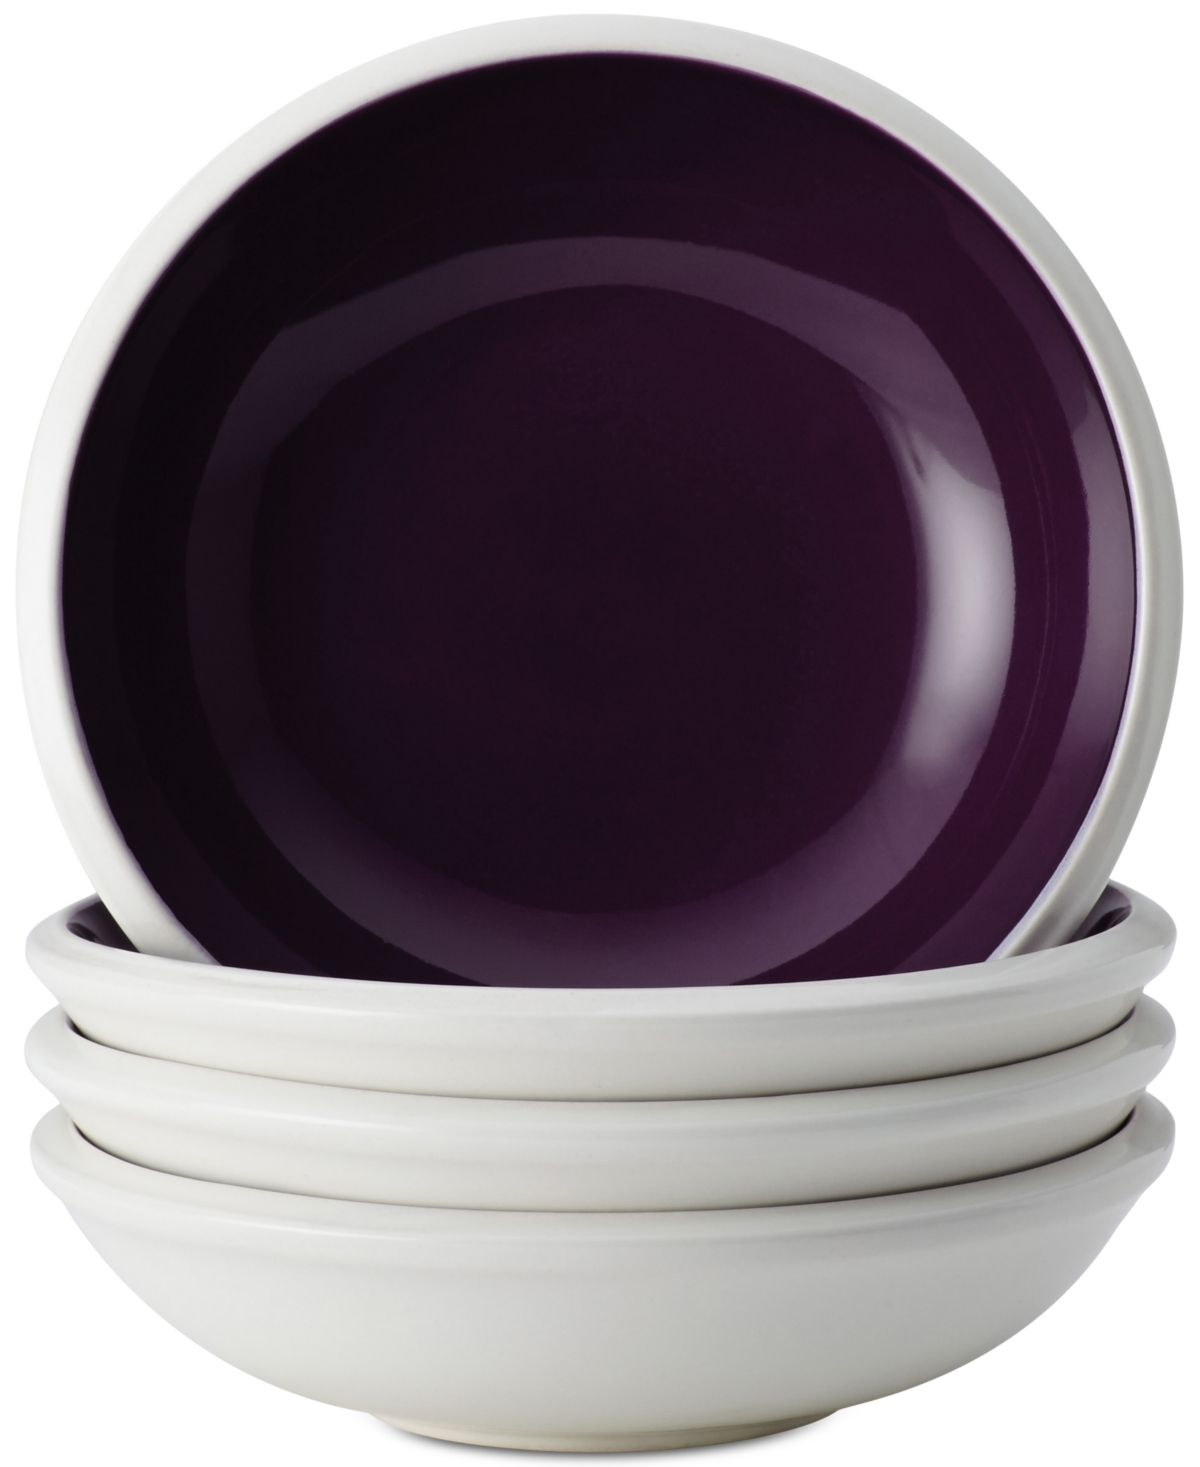 Rachael Ray Rise Purple Set Of 4 Fruit Bowl Sets Purple With